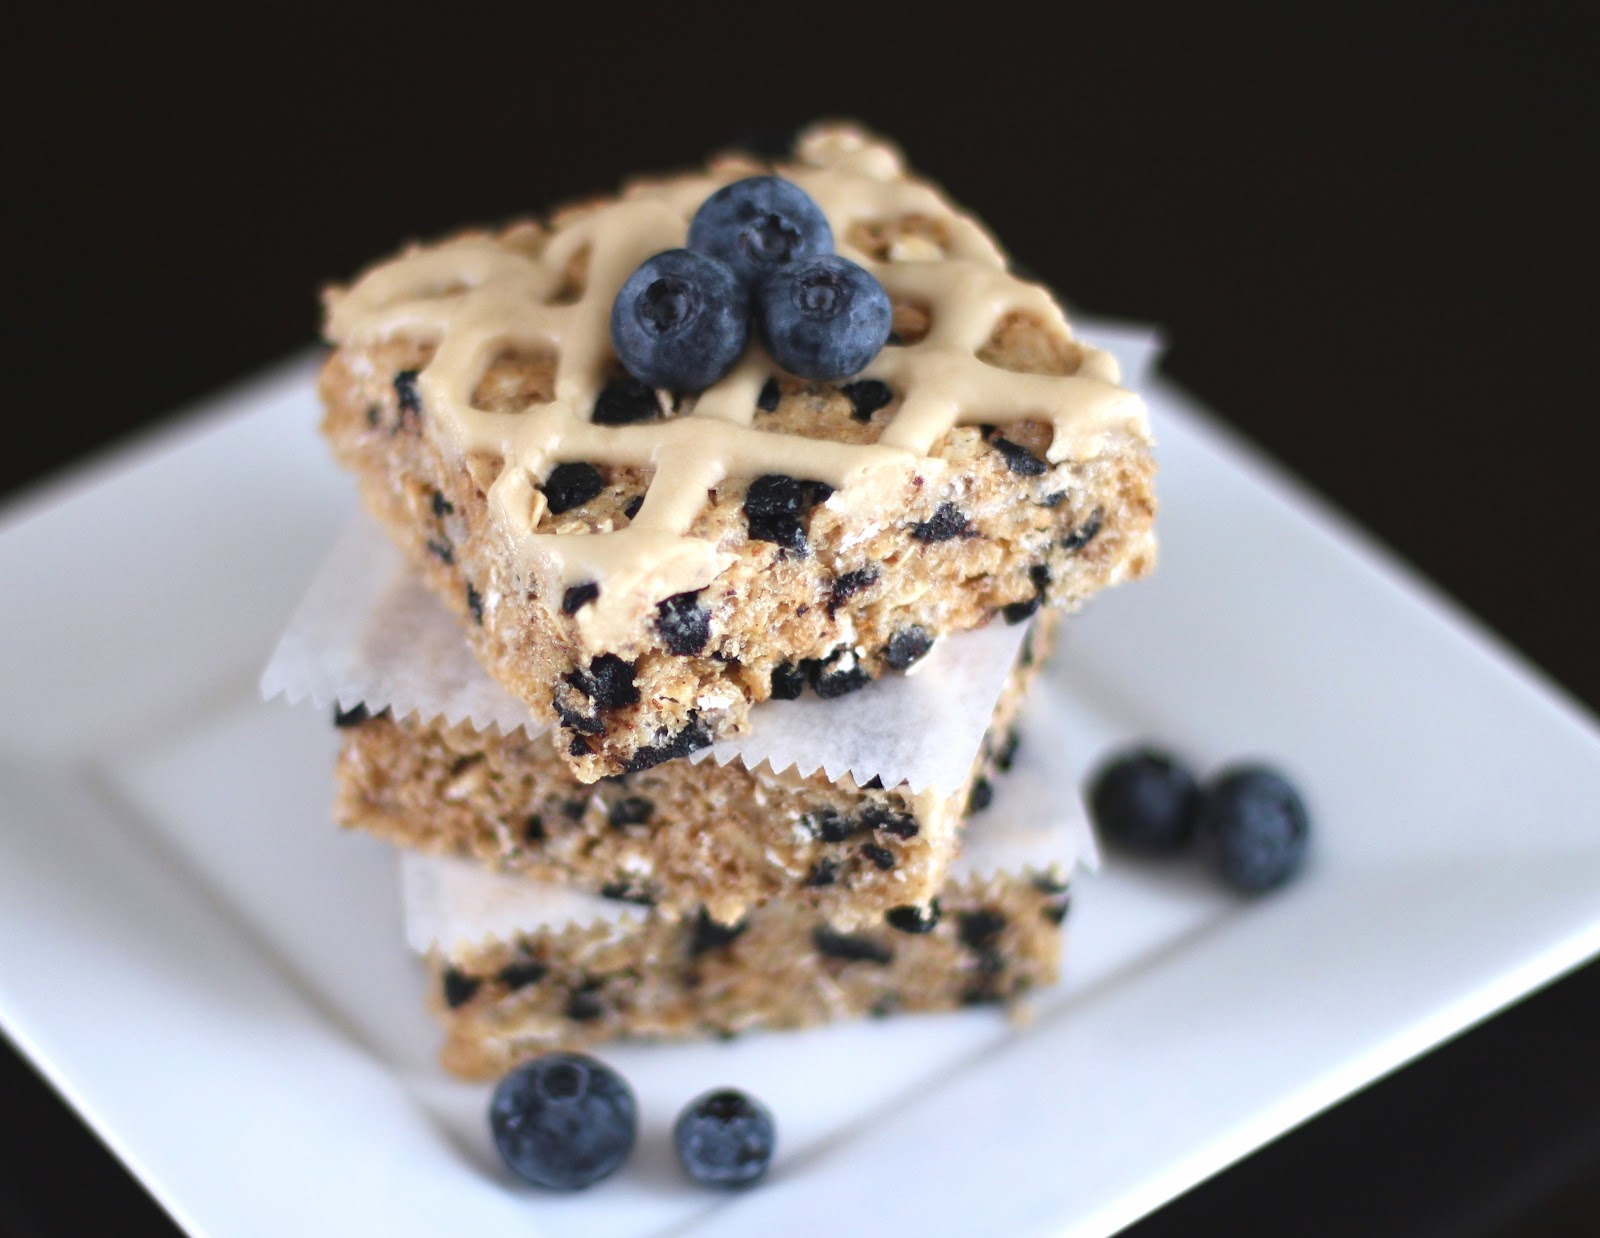 Healthy Blueberry Bliss Krispy Treats with Maple Icing